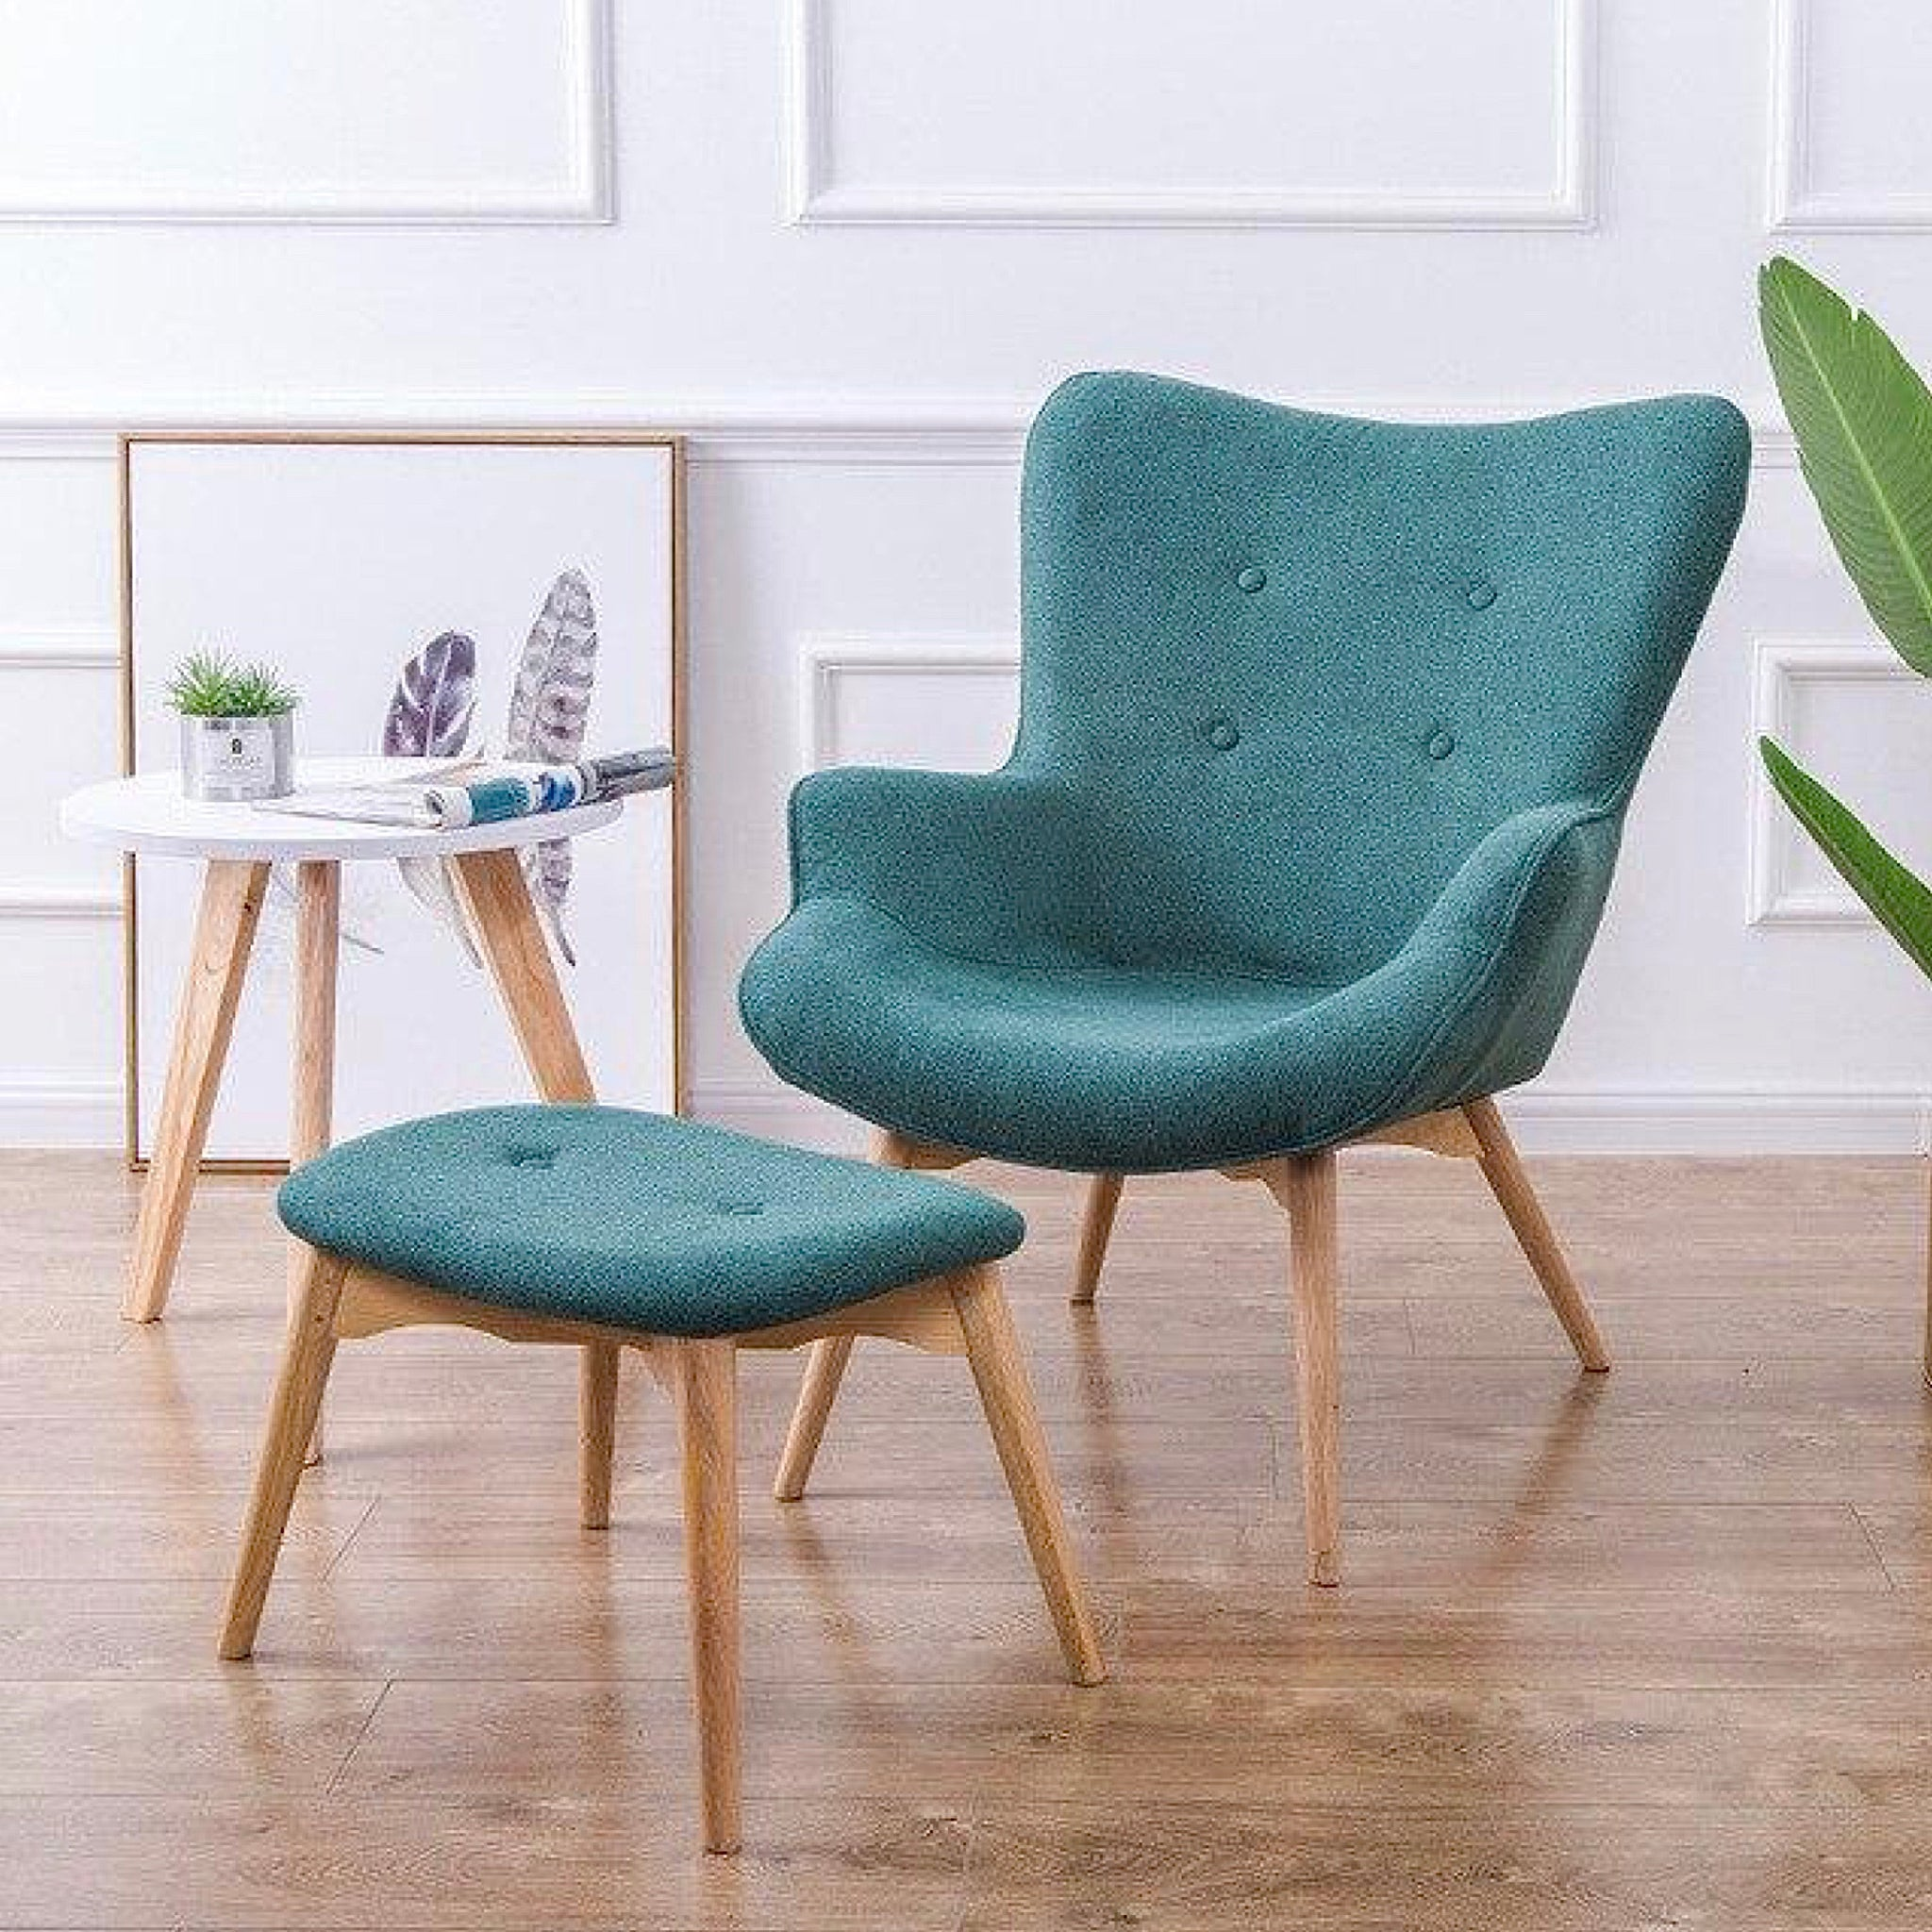 Retro Contour Chair with Foot Stool  Modern Armchair Green Tufted Accent Ottoman for Living Room Bedroom Furniture Trend